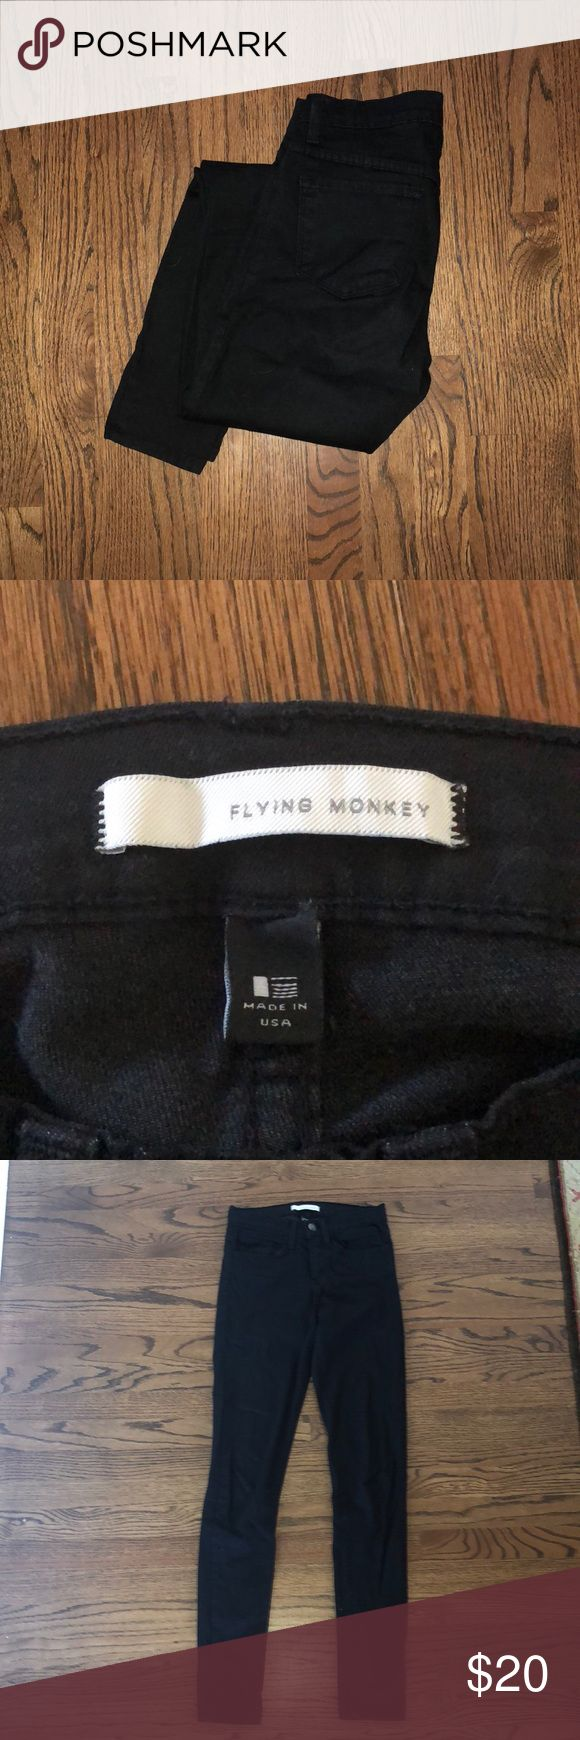 Flying monkey jeans Worn, but still in great condition. Offers accepted. flying monkey Jeans Skinny